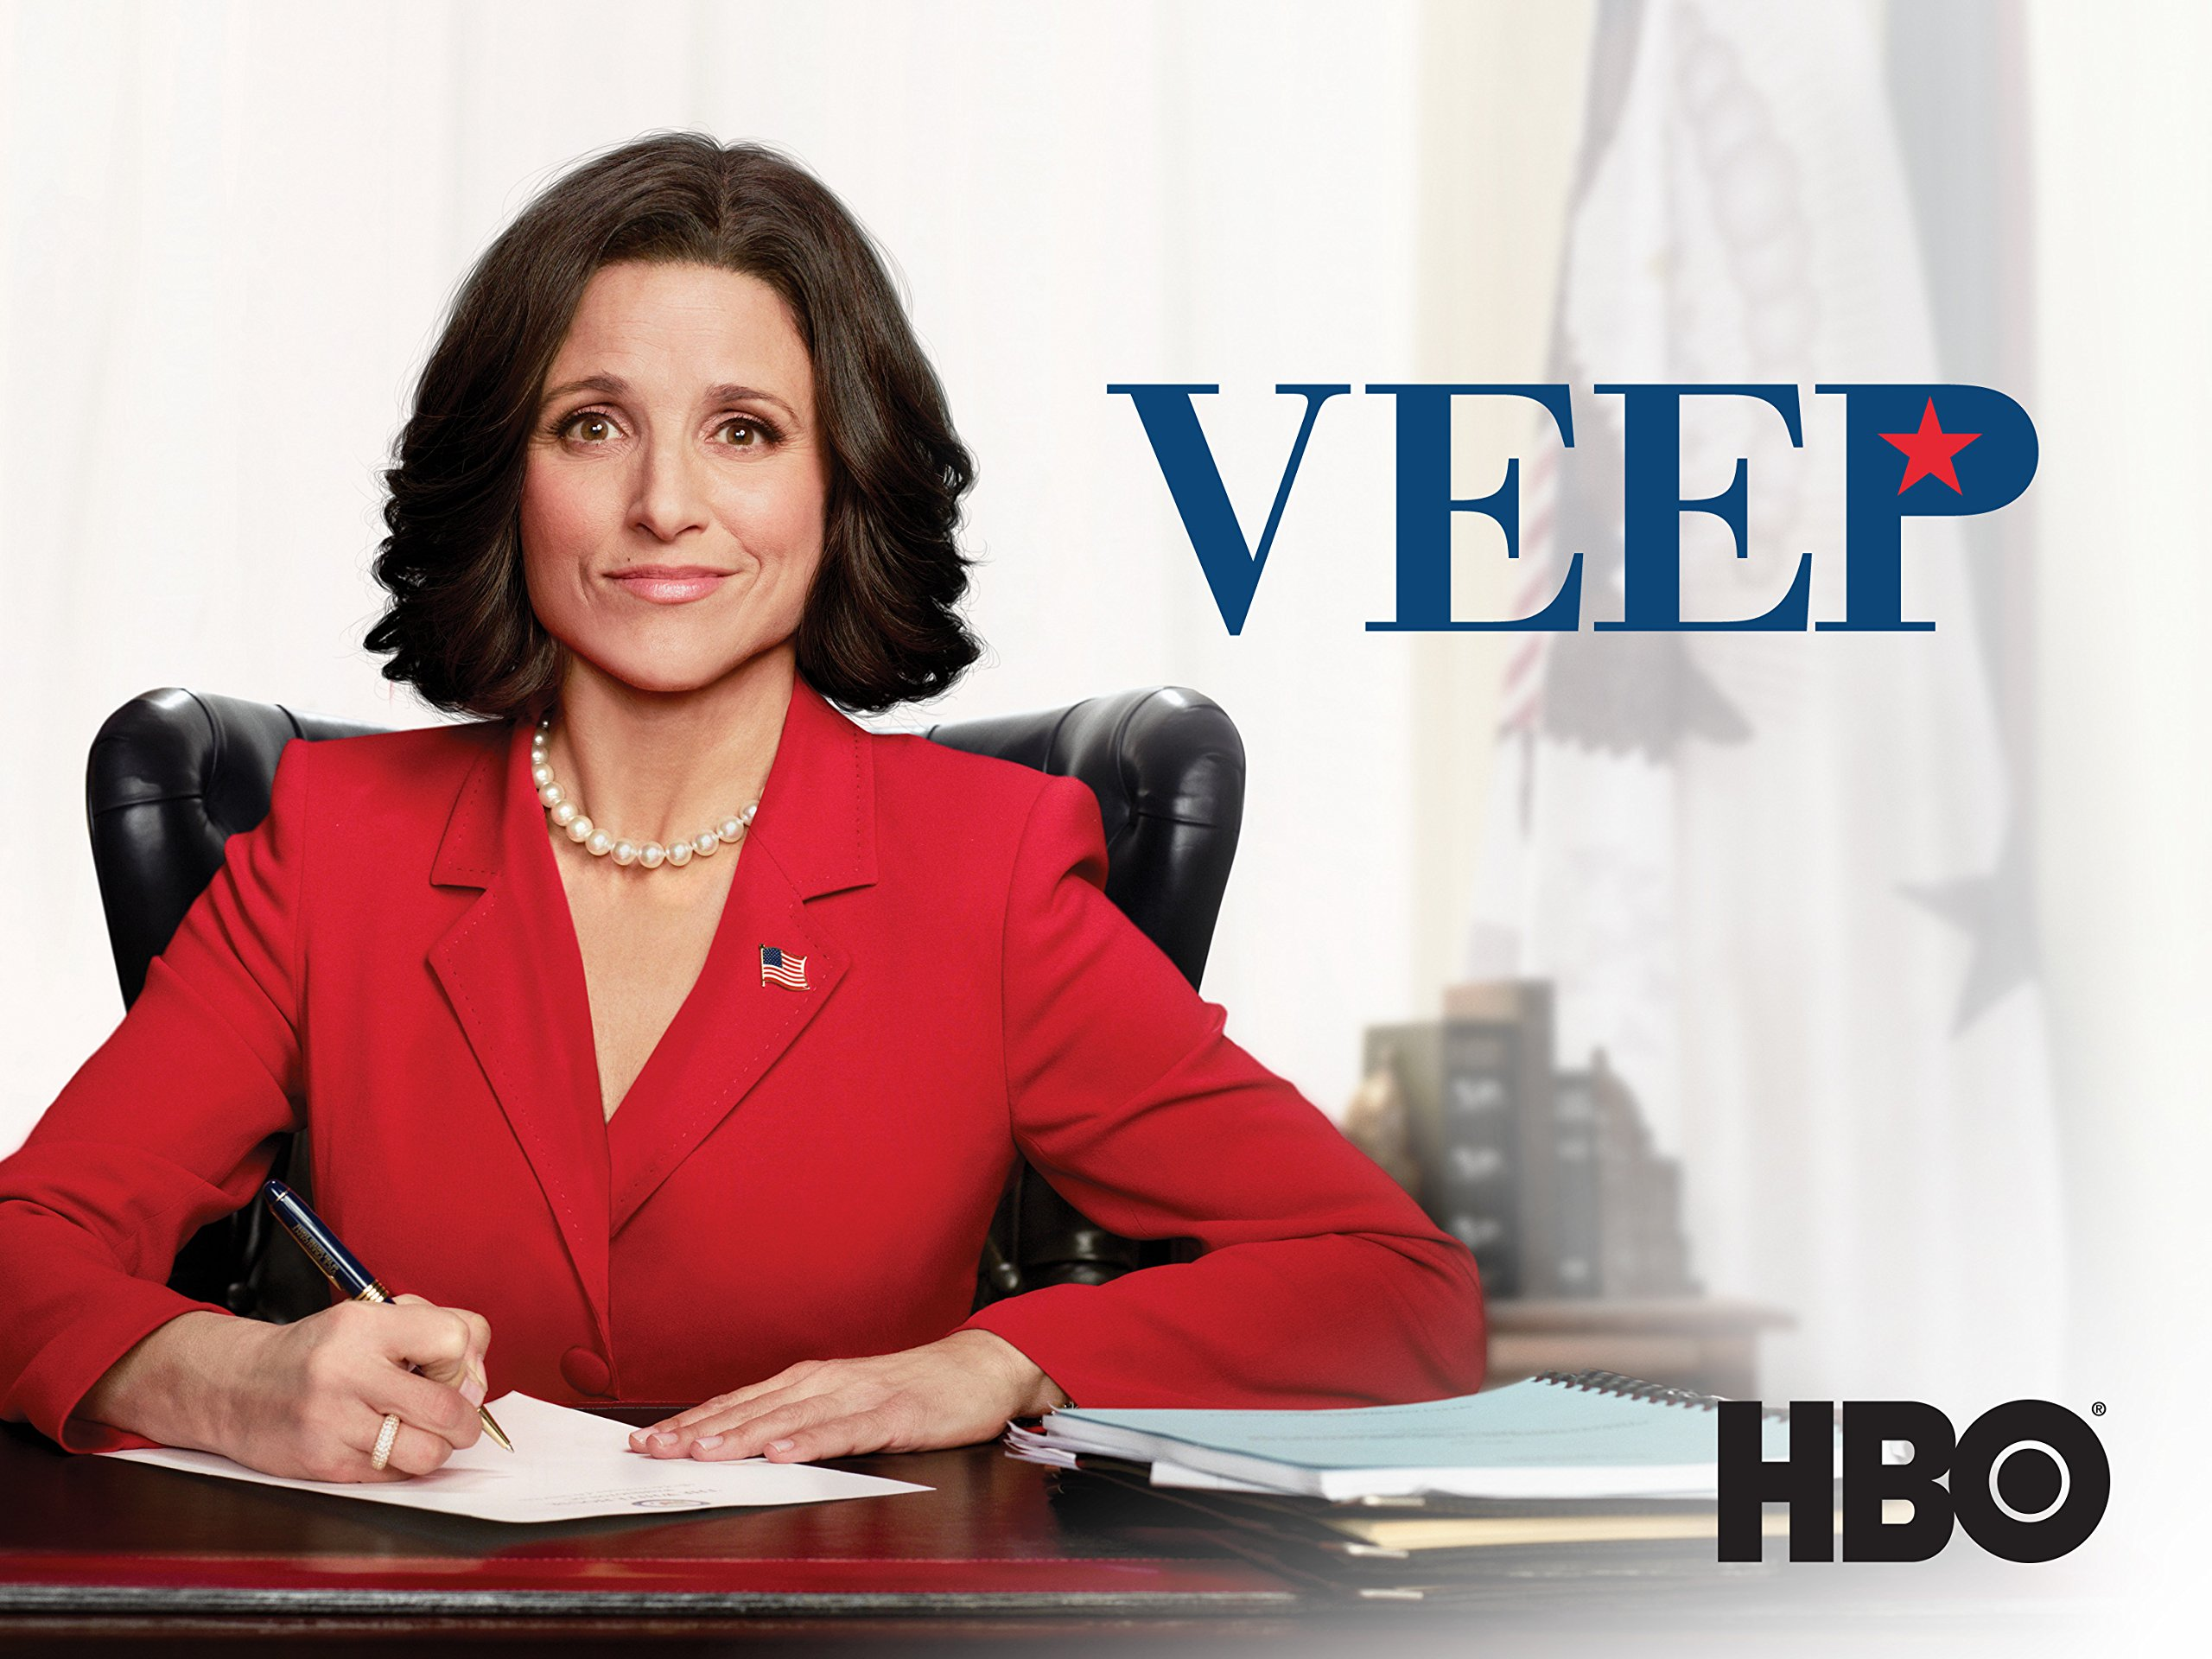 Amazon.com: Watch Veep: Season 1 | Prime Video